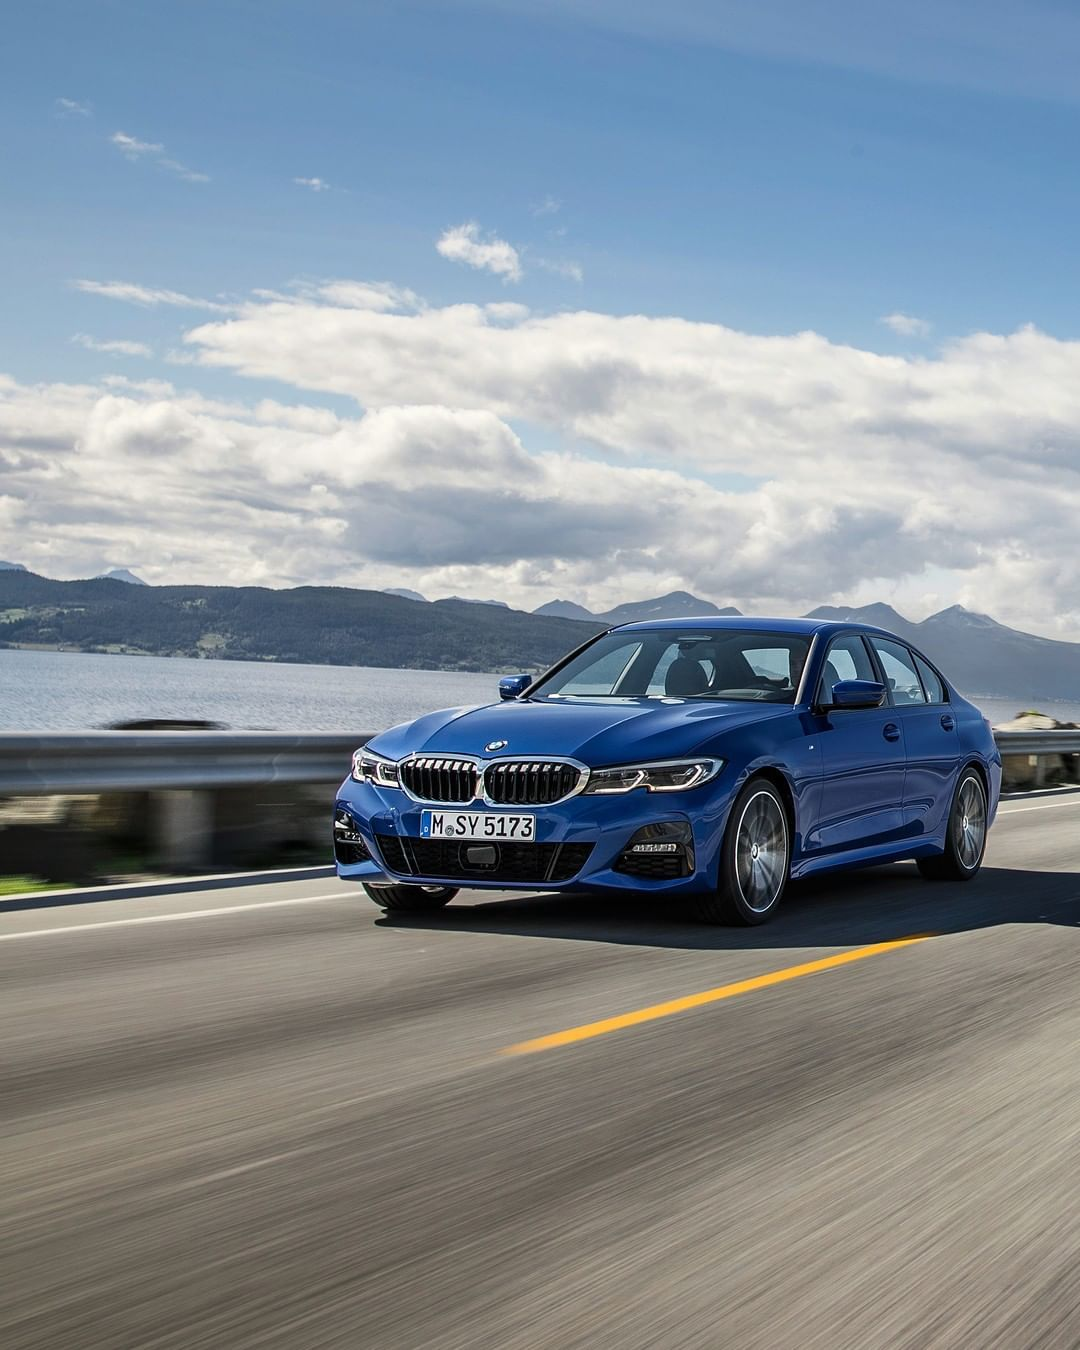 Bmw G20 3 Series Roller In Portimao Blue Metallic With Images